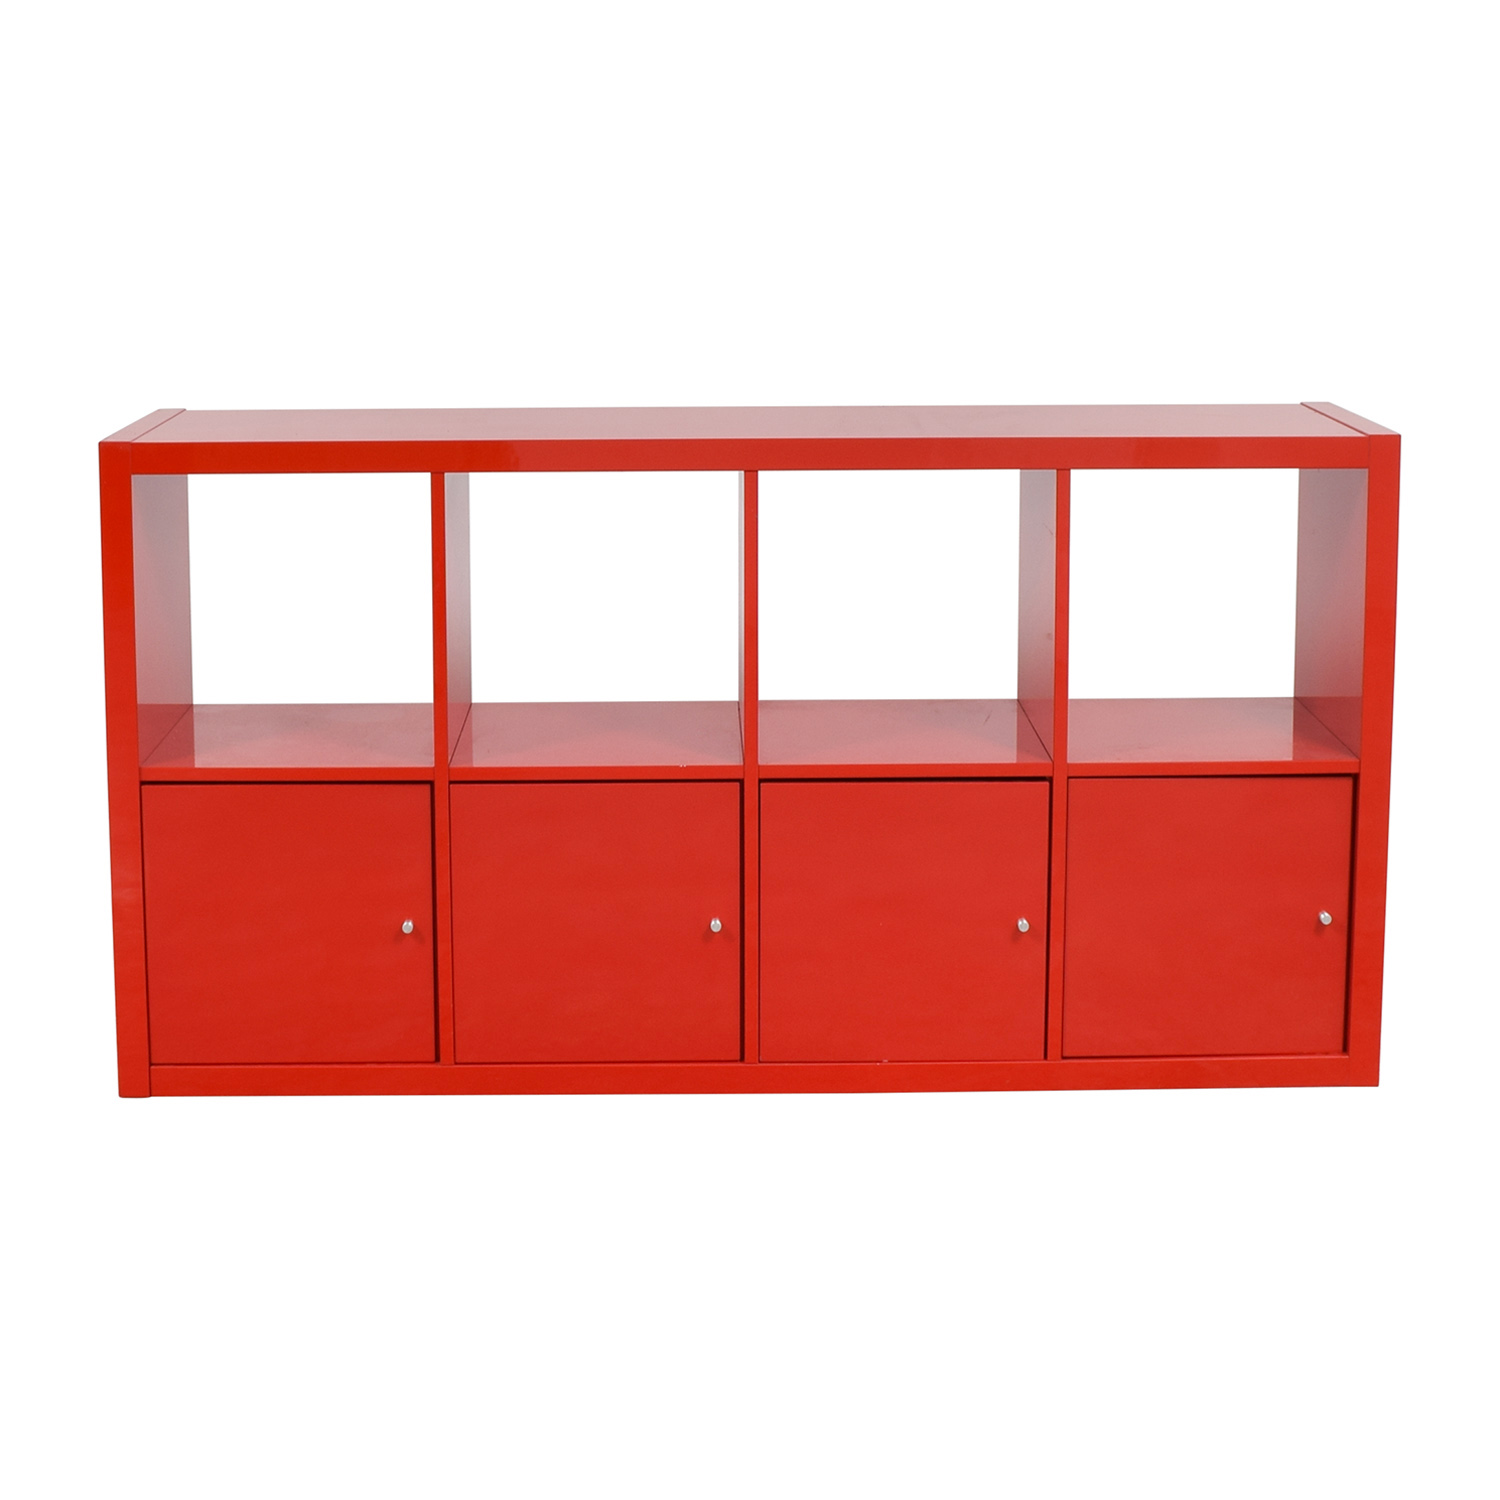 Ikea red shelving with storage cabinets bookcases shelving